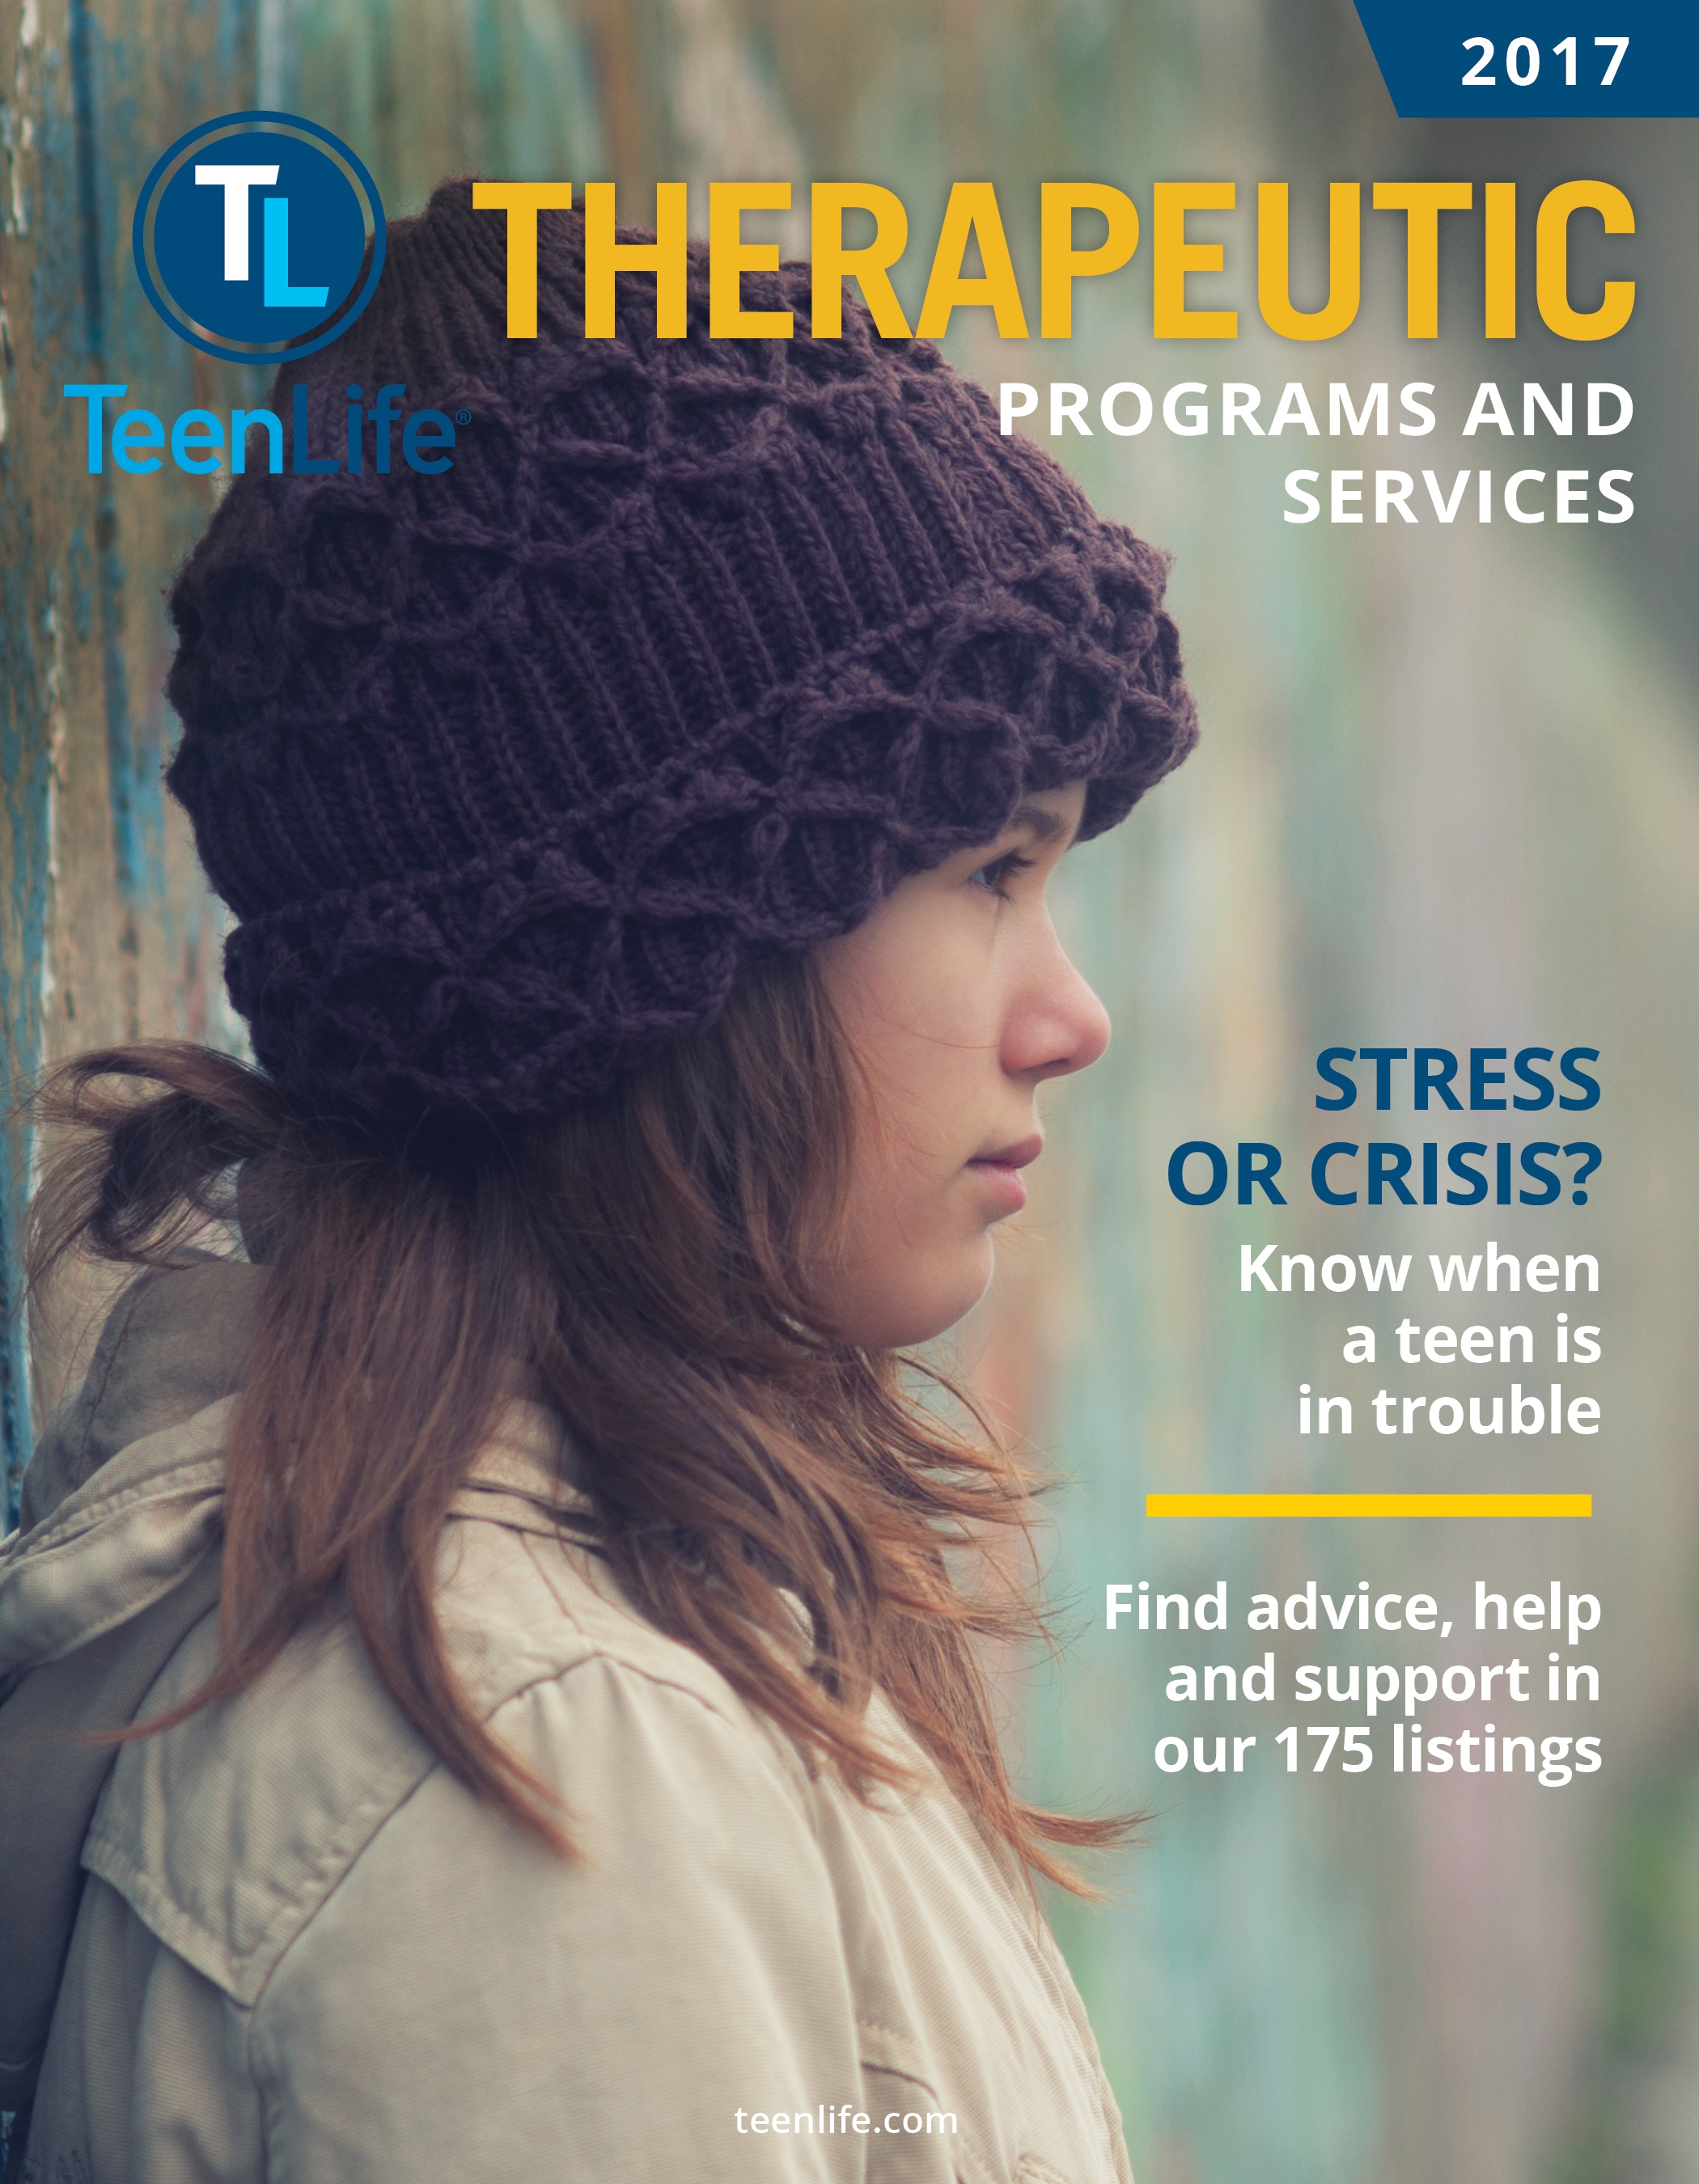 Guide to Therapeutic Programs and Services 2017